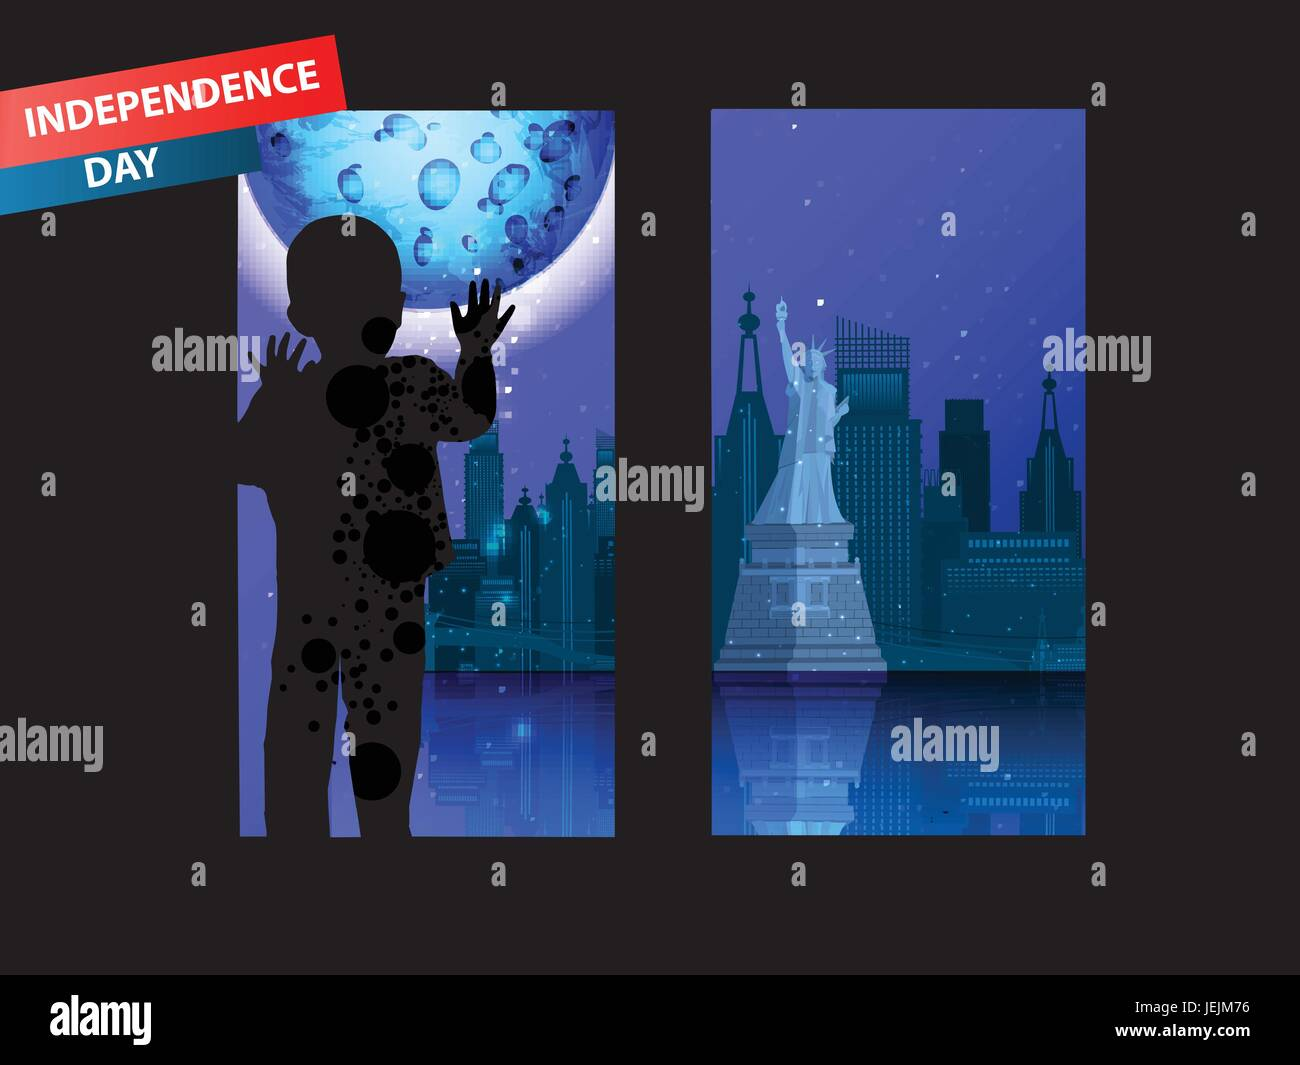 Independence Day United States. Concept of acceptability. The boy is looking out the window at the city of New York. - Stock Vector